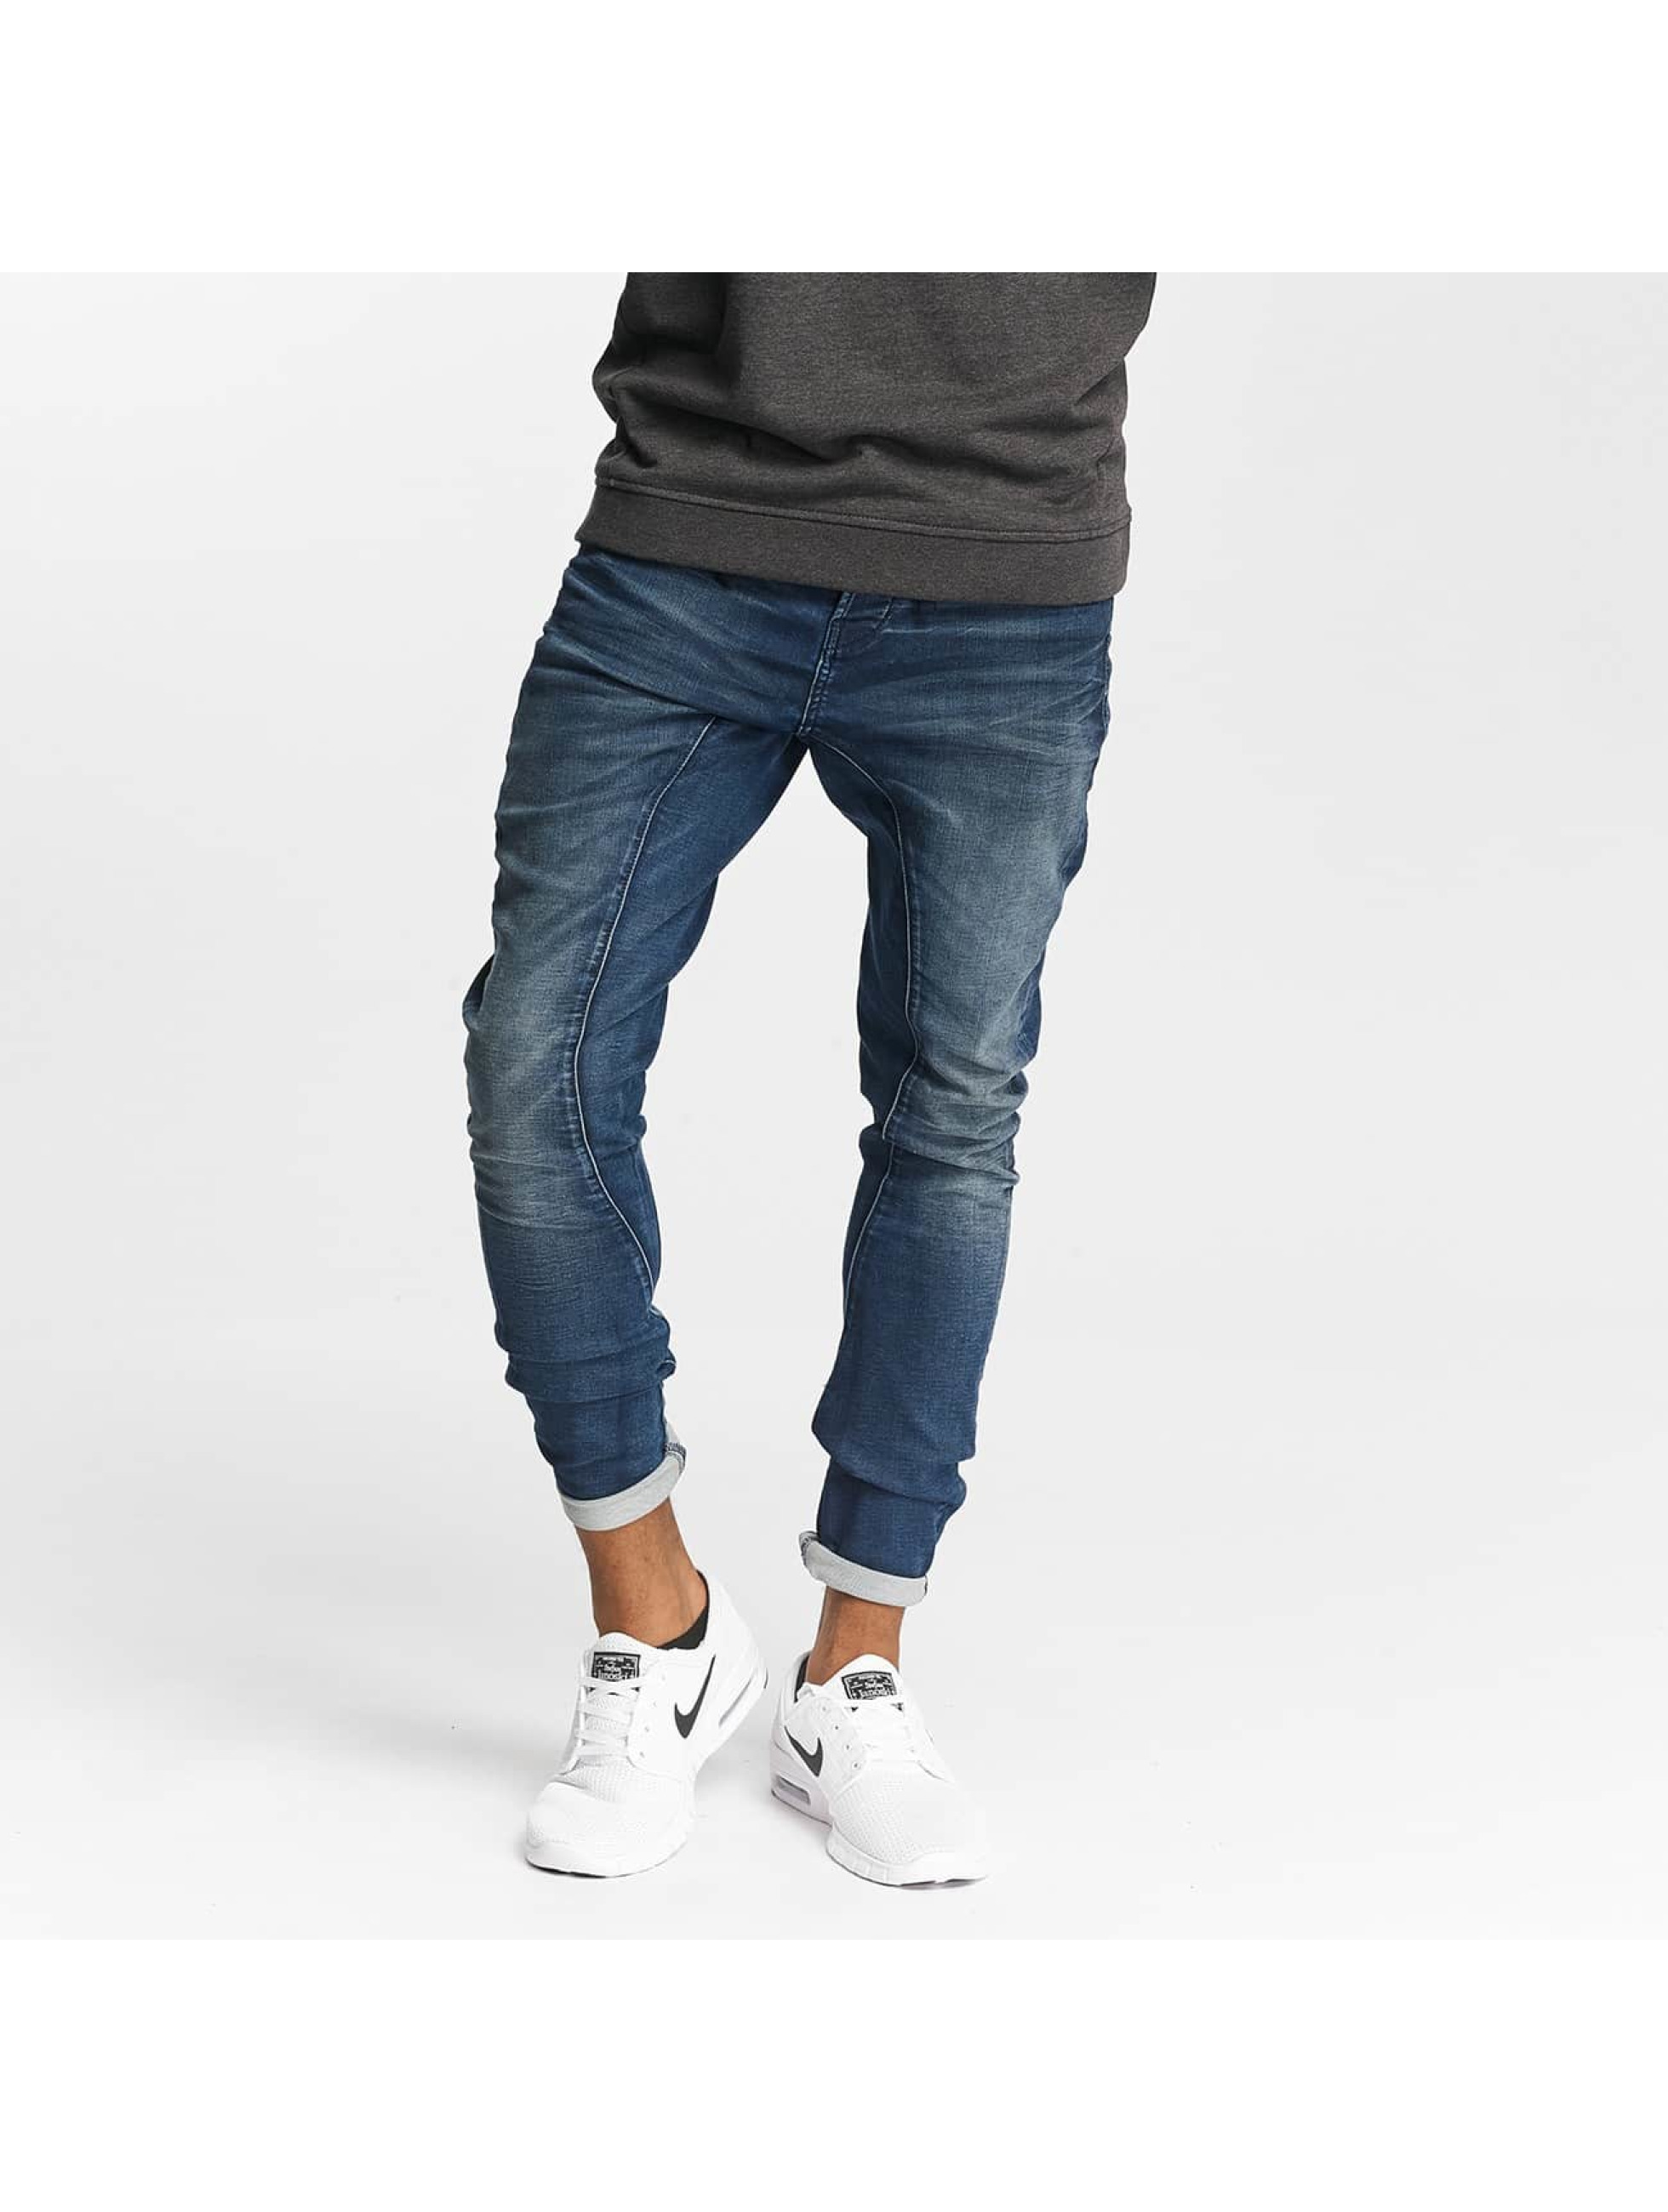 Jack & Jones Männer Antifit jjiSimon jjClay in blau